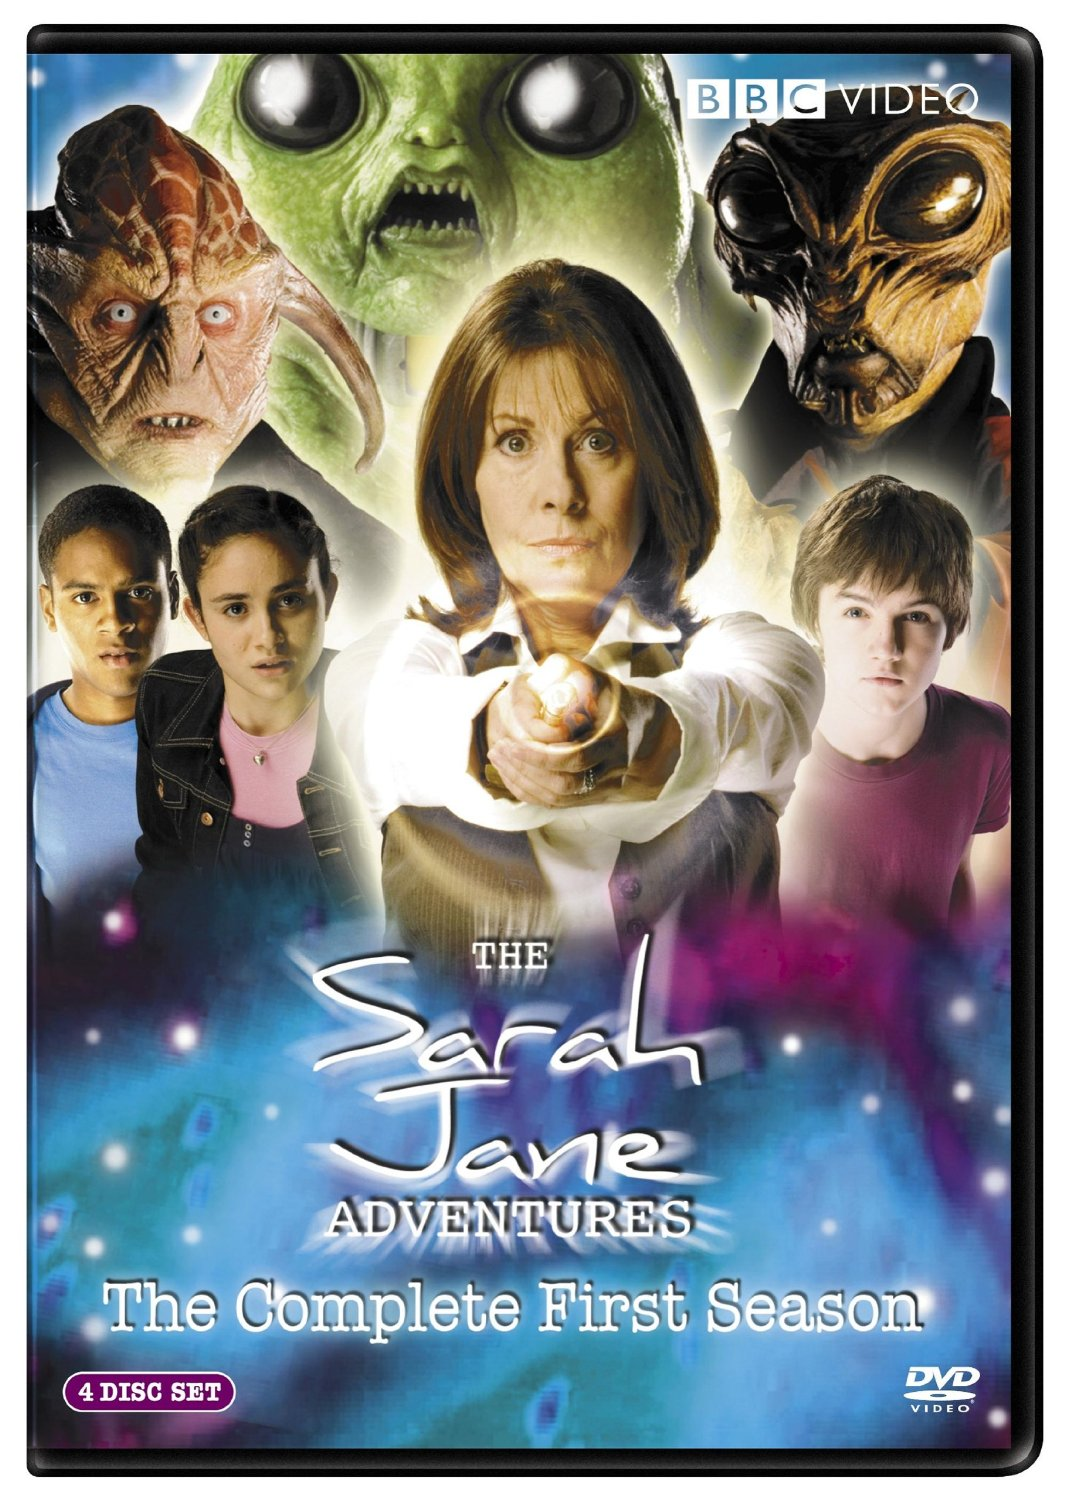 The Sarah Jane Adventures (2007 series)